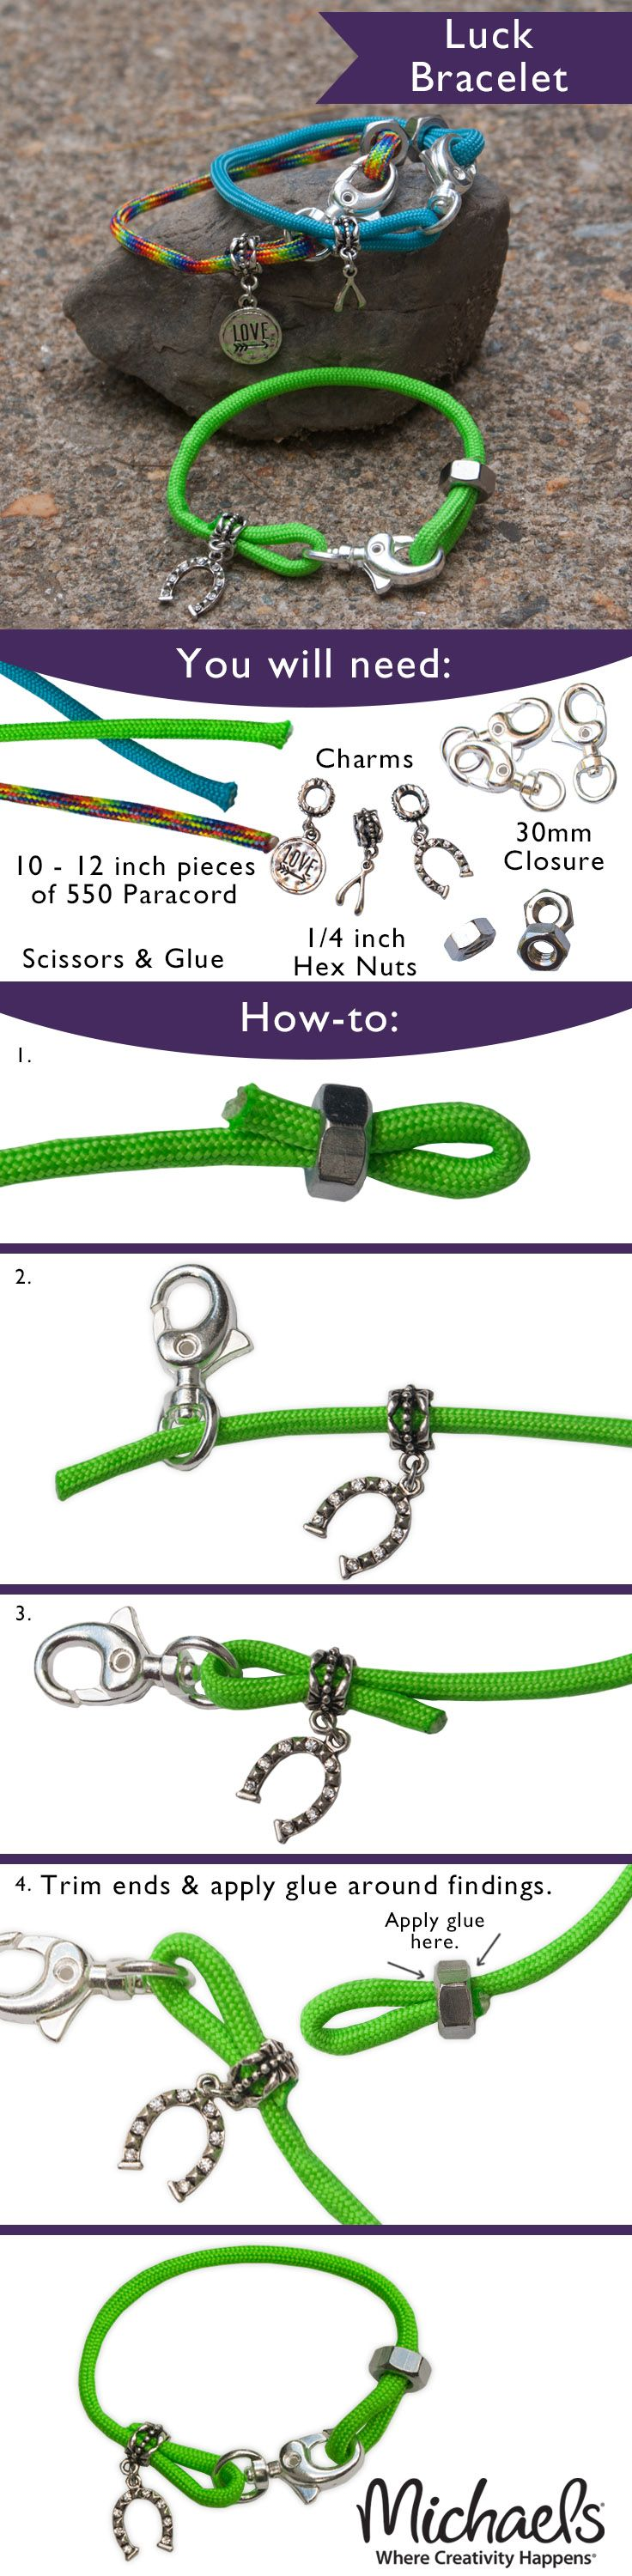 These Diy Paracord Luck Bracelets Are So Easy To Make You Can